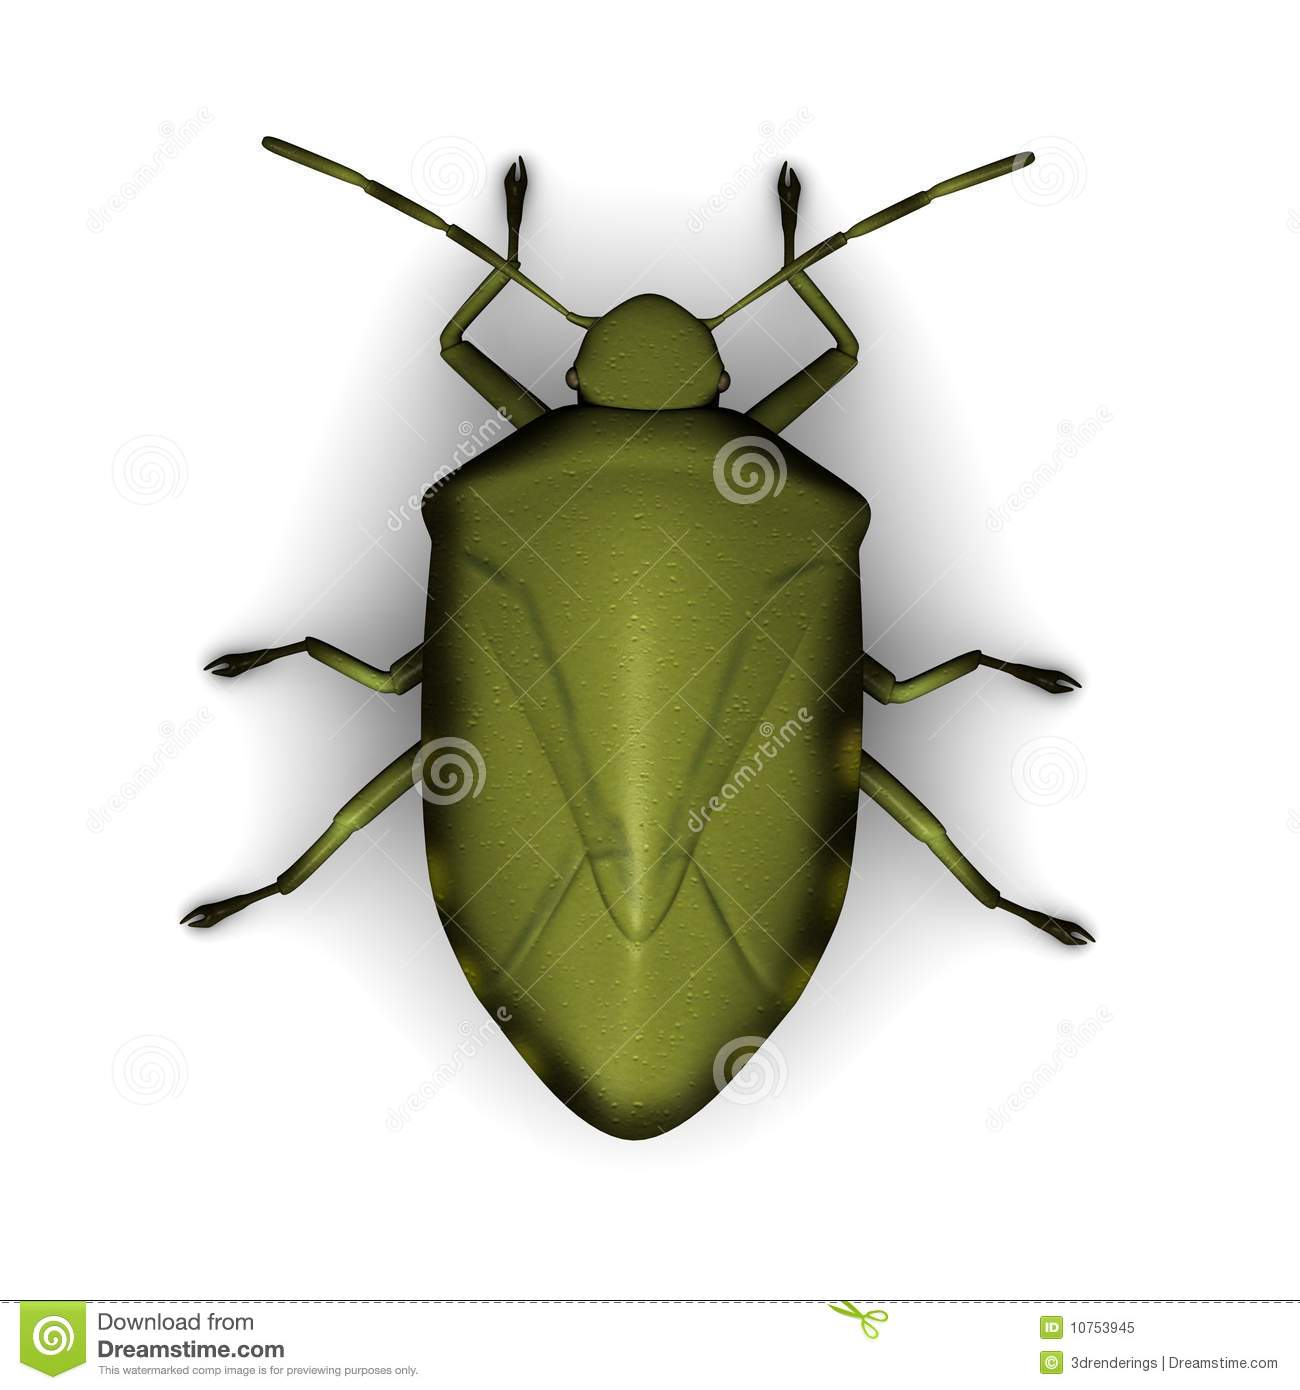 Stink Bug clipart #16, Download drawings